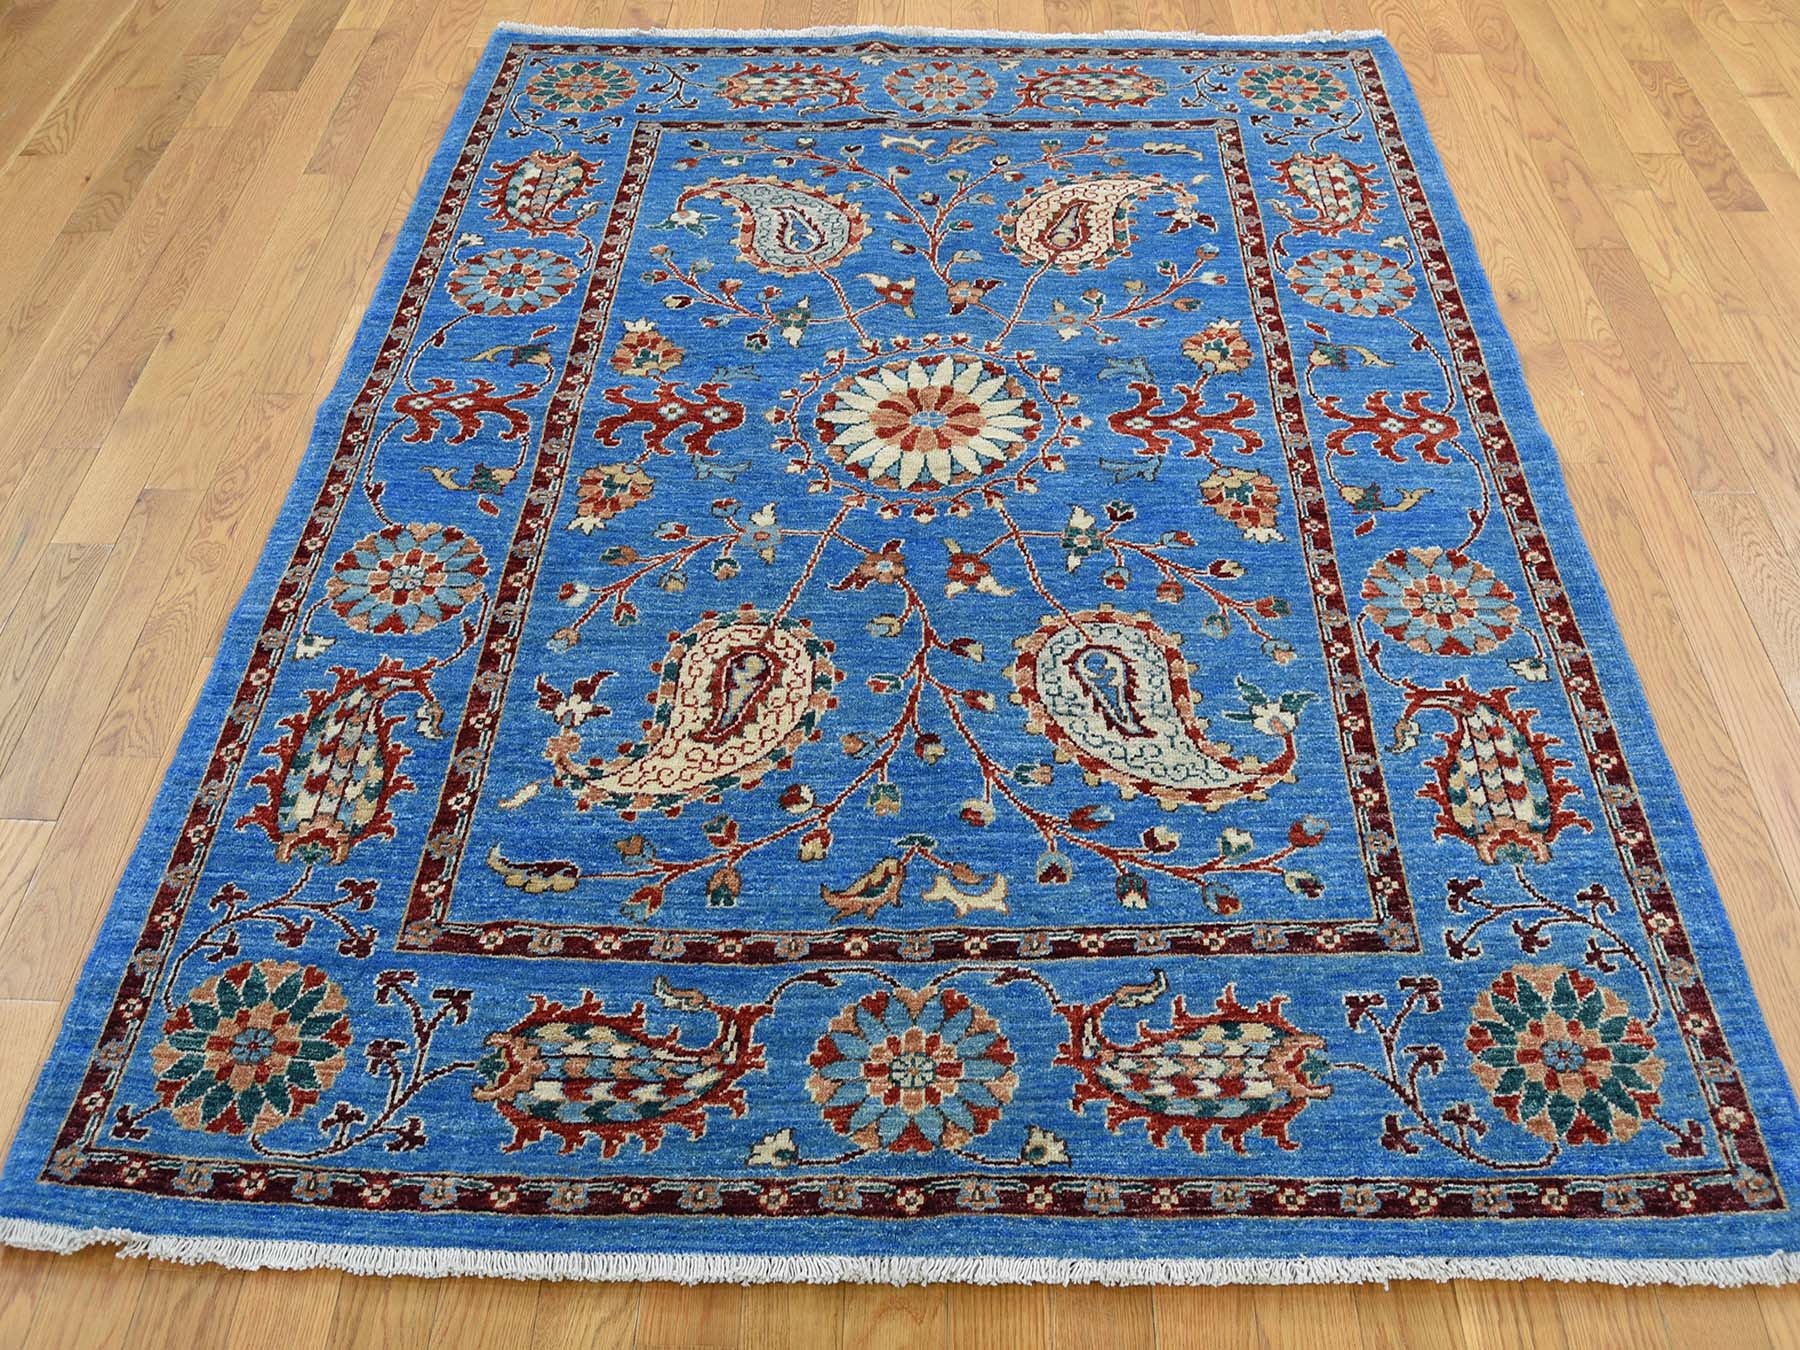 Transitional Wool Hand-Knotted Area Rug 5'2